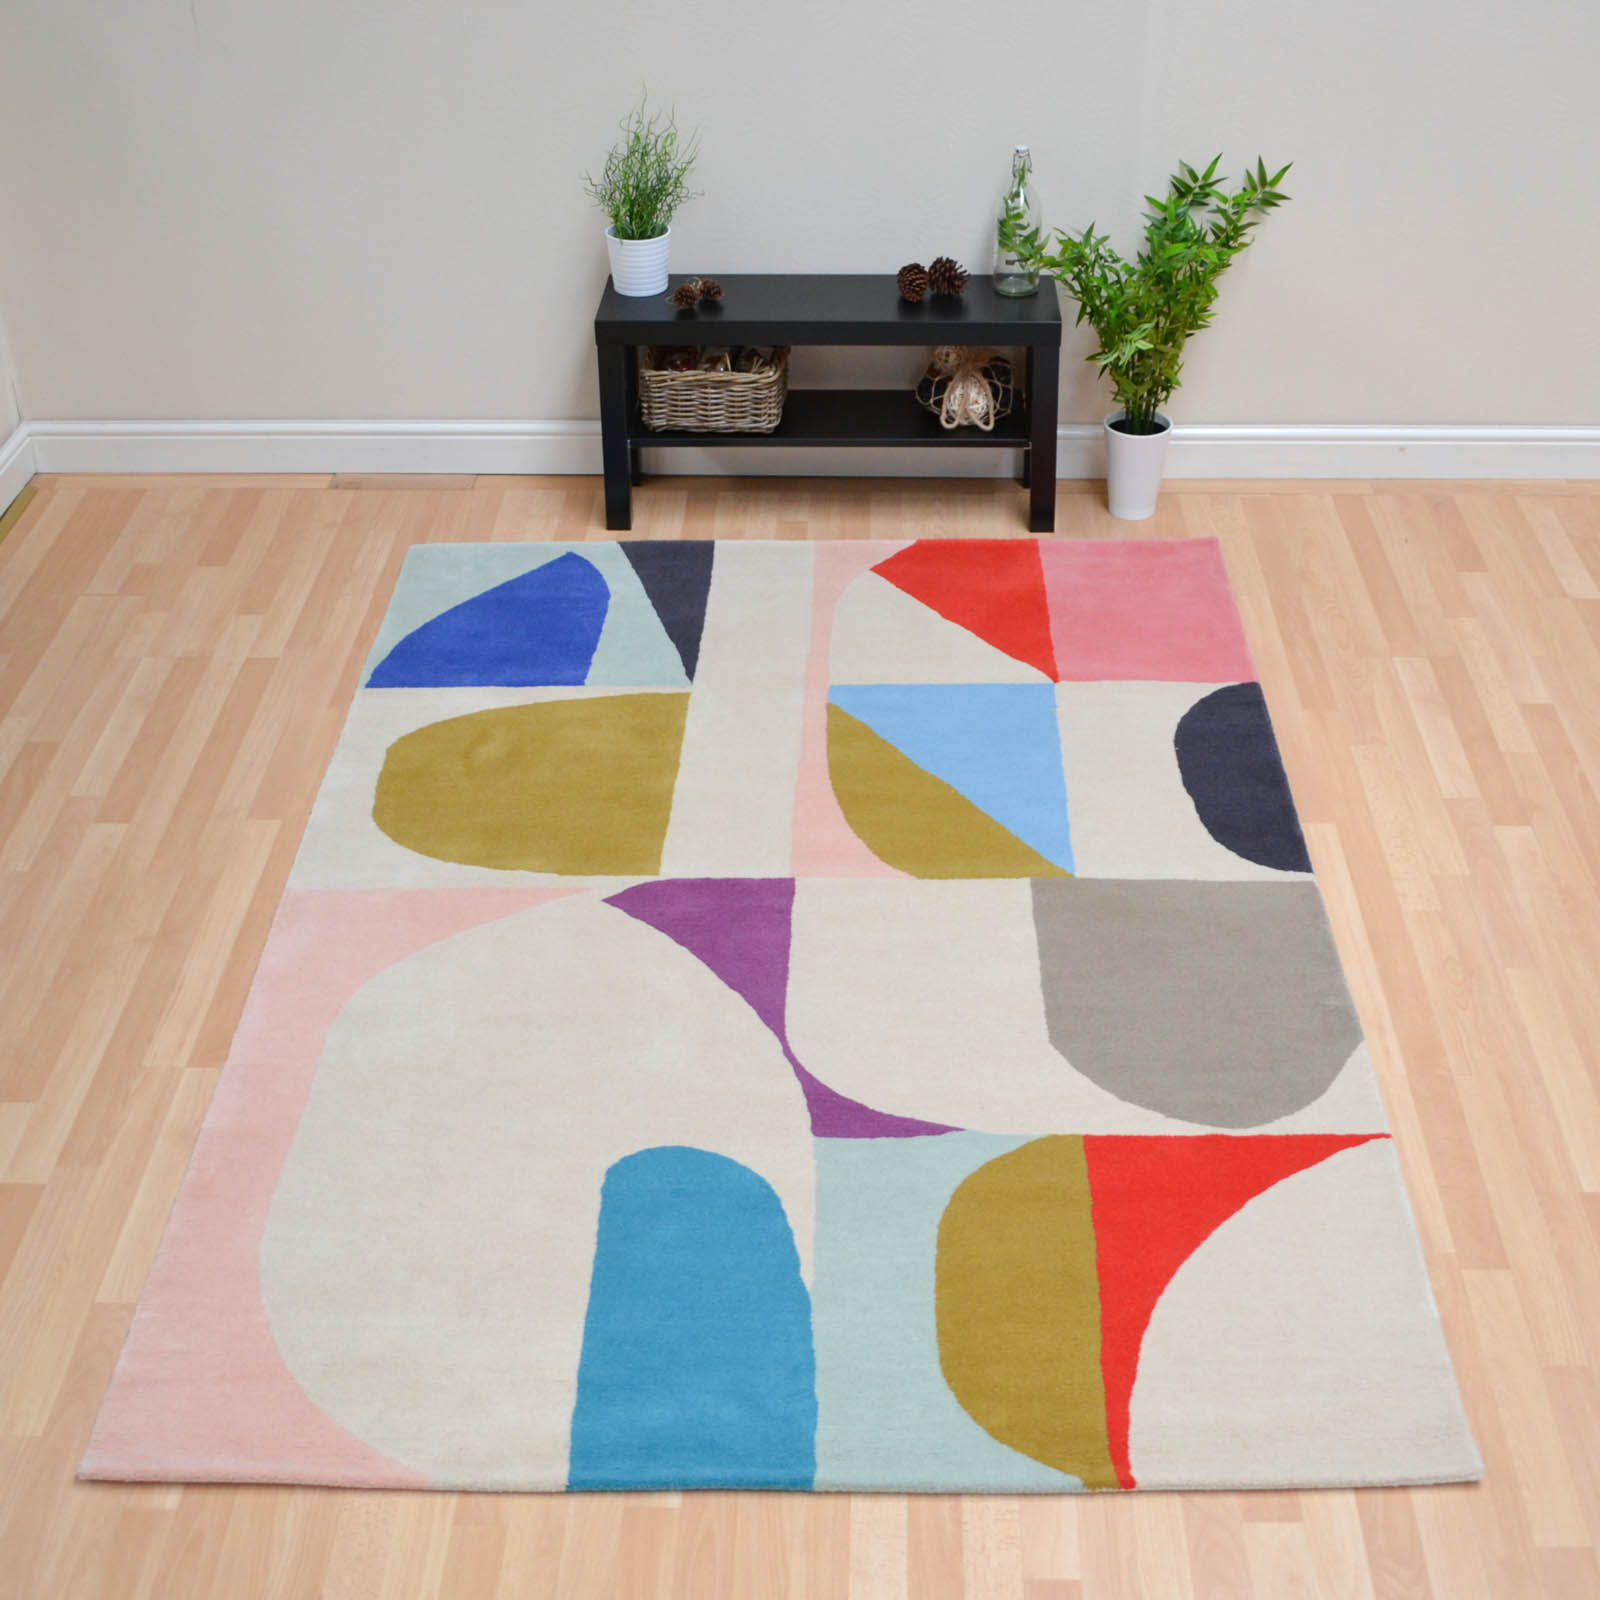 Estella Harmony 88602 Wool Rugs by Brink and Campman